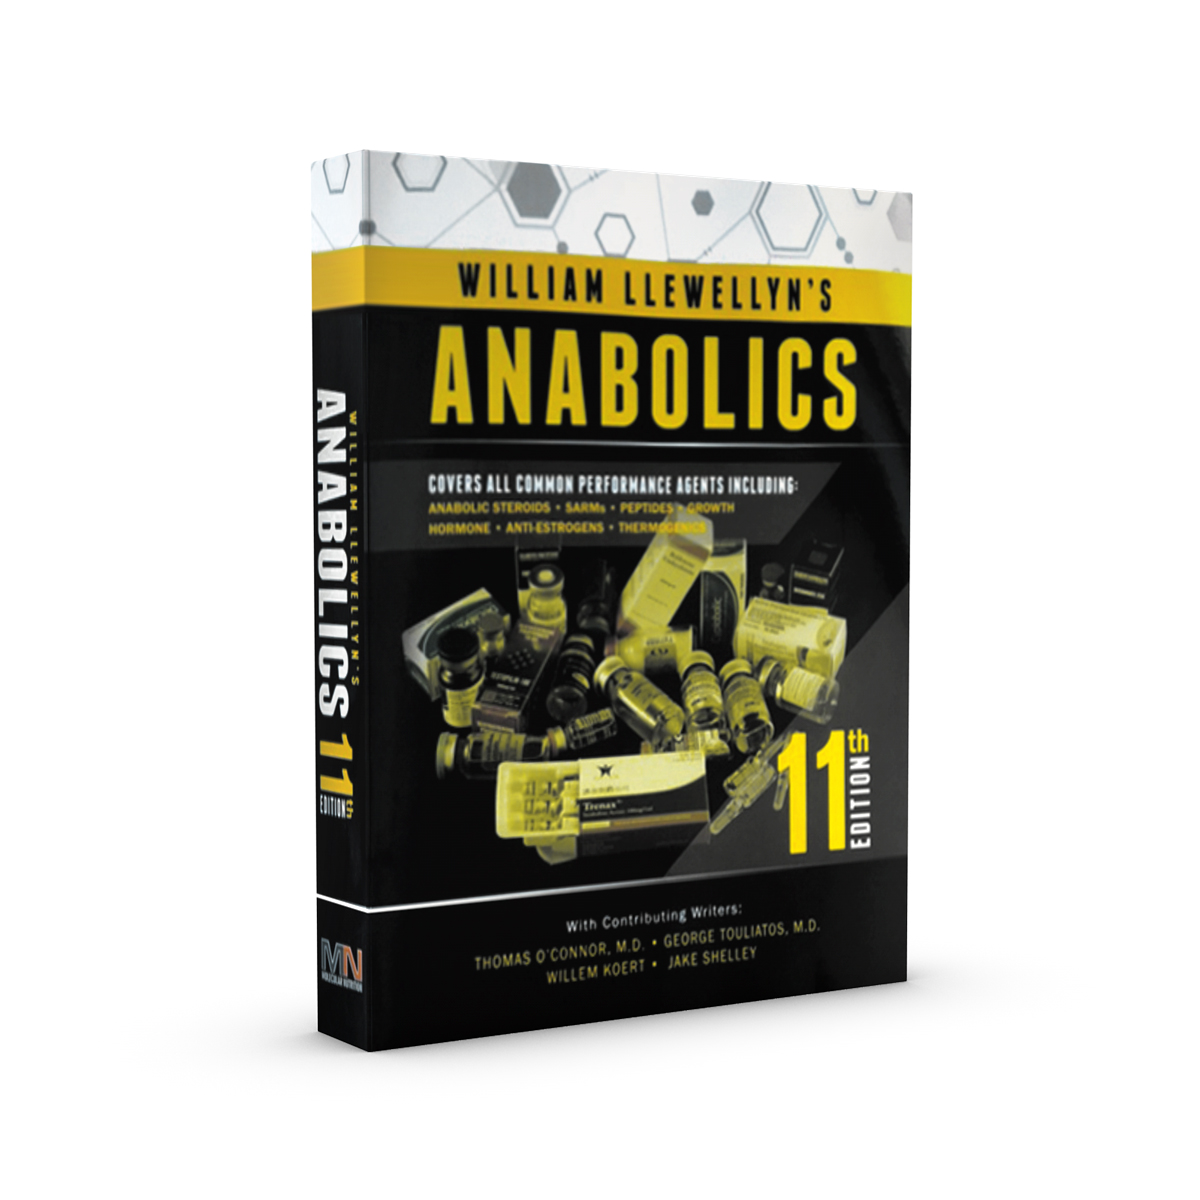 william llewellyn's anabolics 9th edition free download